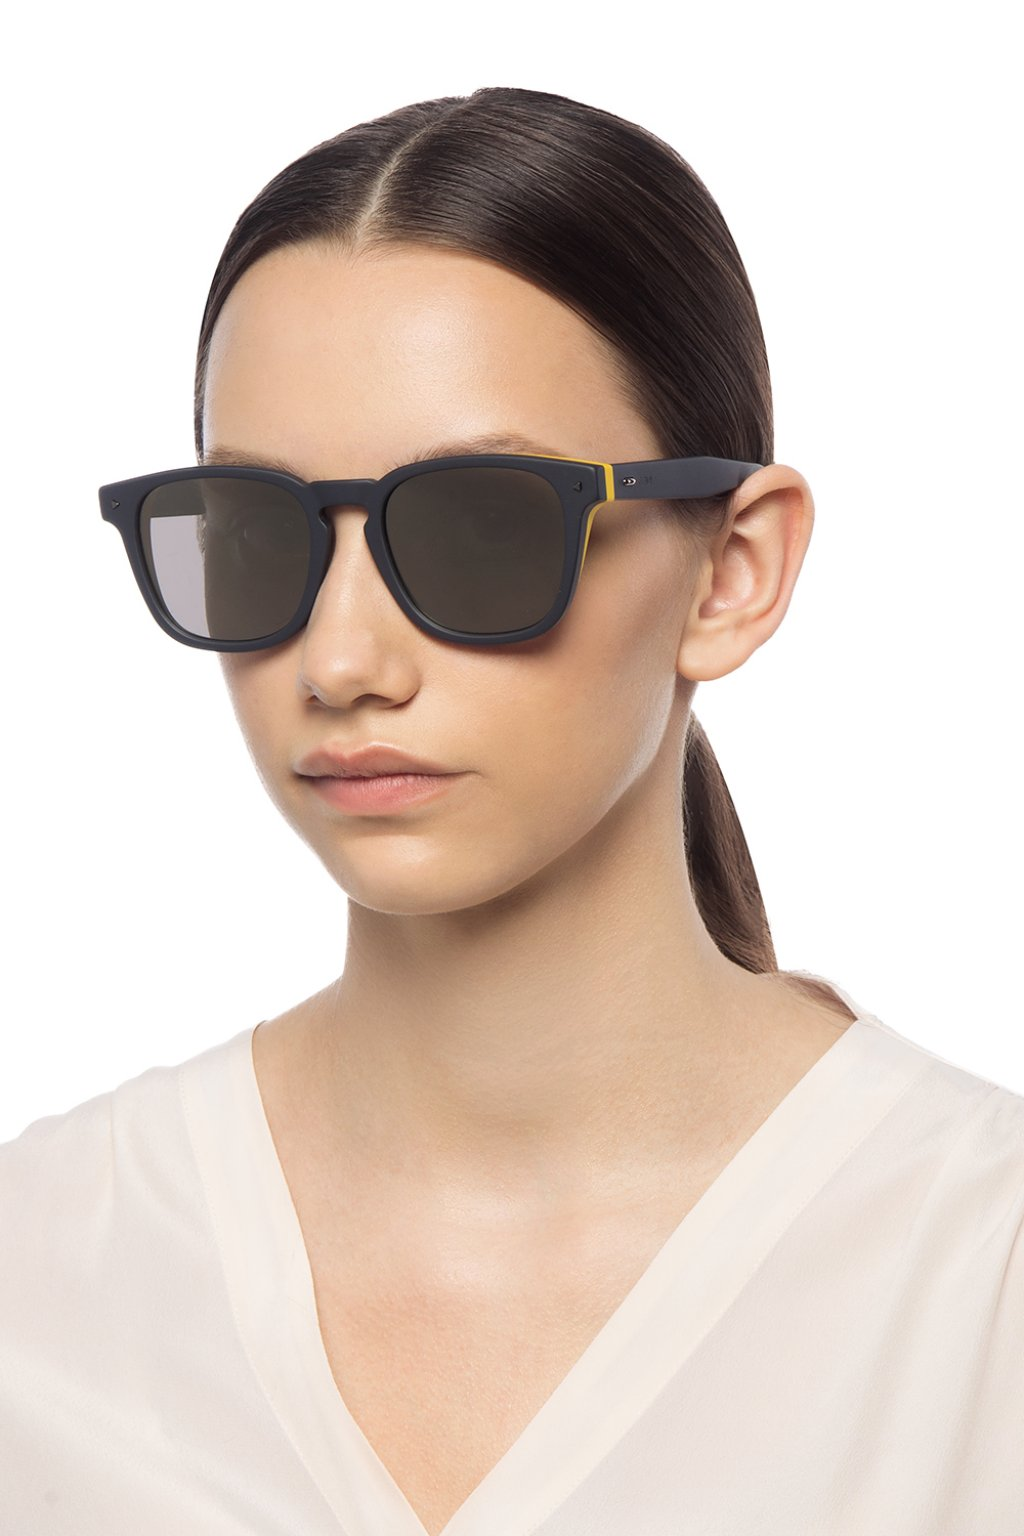 Fendi 'I see you' sunglasses